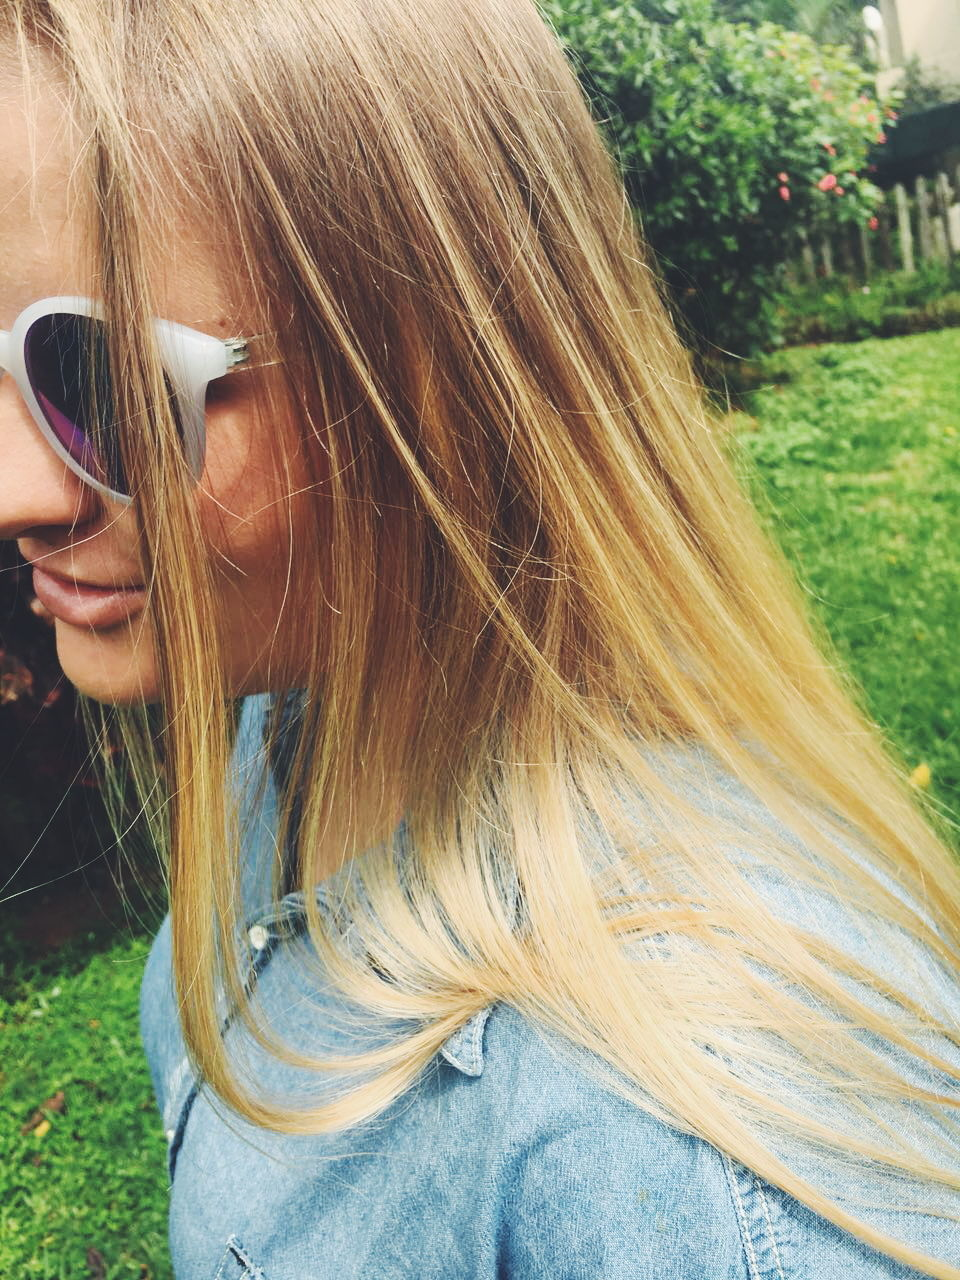 sunglasses, long hair, outdoors, one person, grass, day, close-up, young adult, people